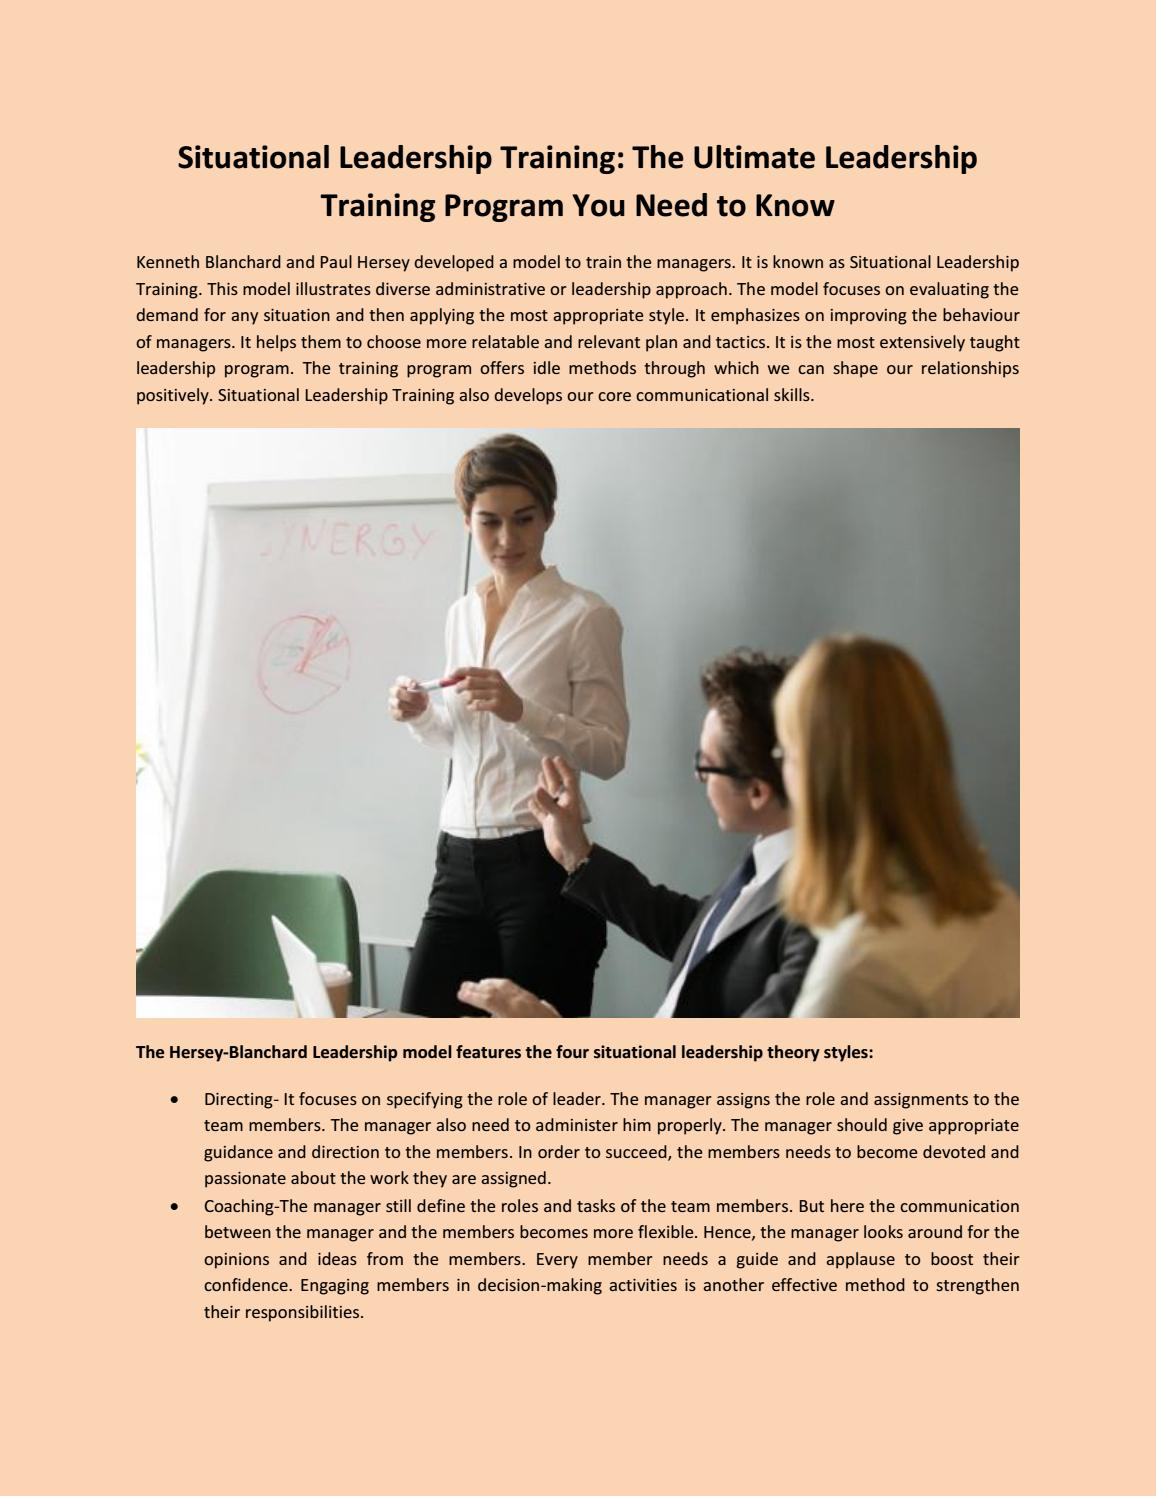 Situational Leadership Training The Ultimate Leadership Training Program You Need To Know By Linda Hudson Issuu